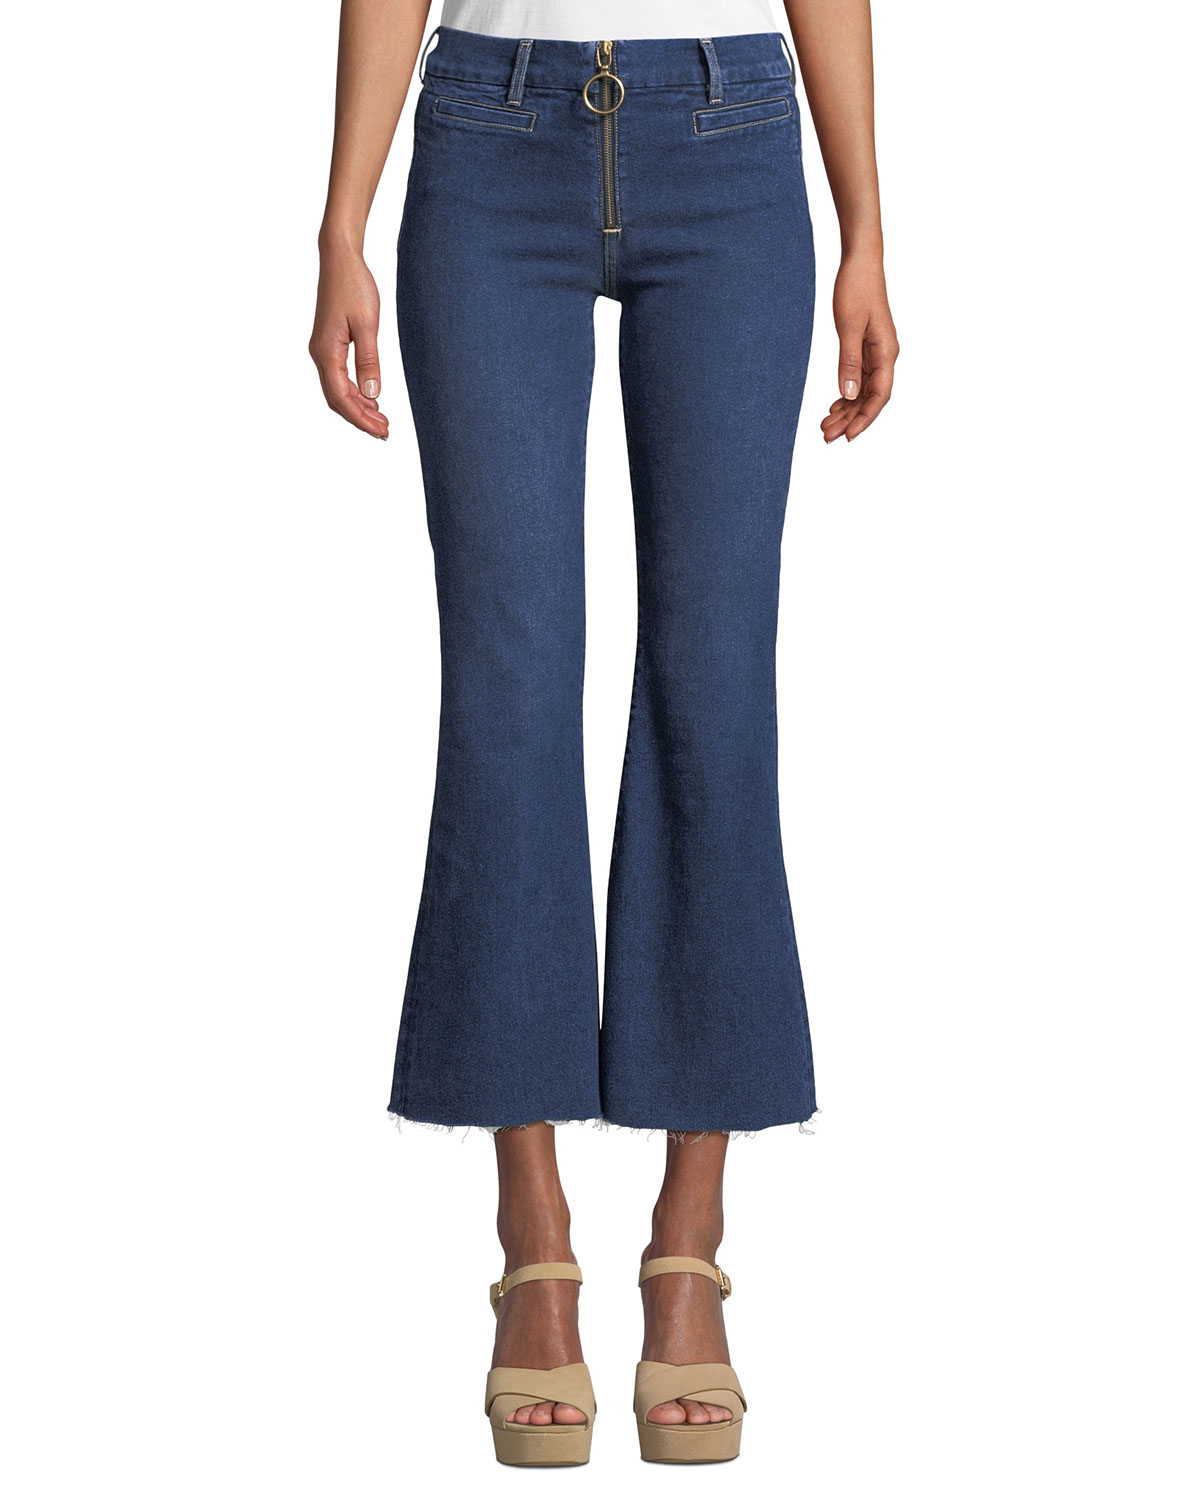 M.i.h Jeans MARRAKECH CROP KICK-FLARE JEANS WITH RING ZIP & RAW HEM